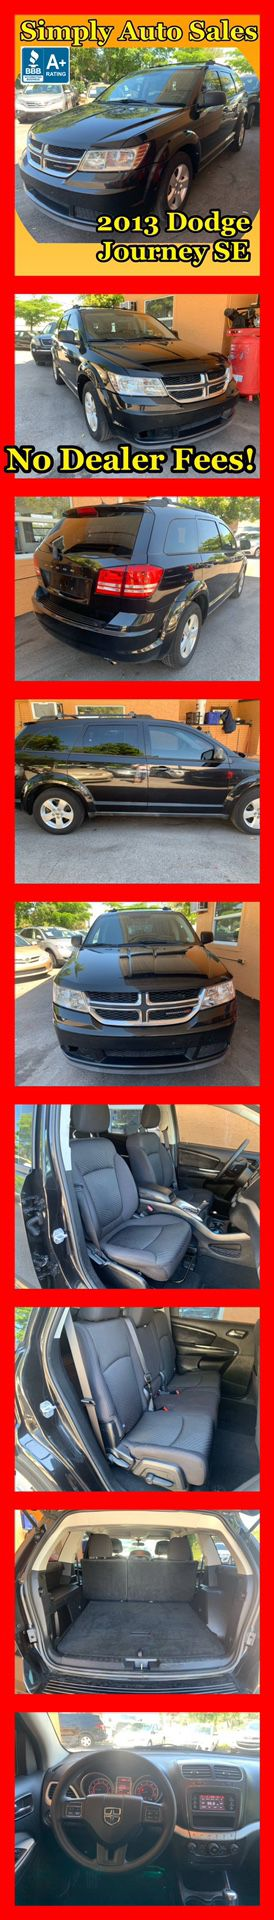 2013 Dodge Journey SE for Sale in Palm Beach Gardens, FL